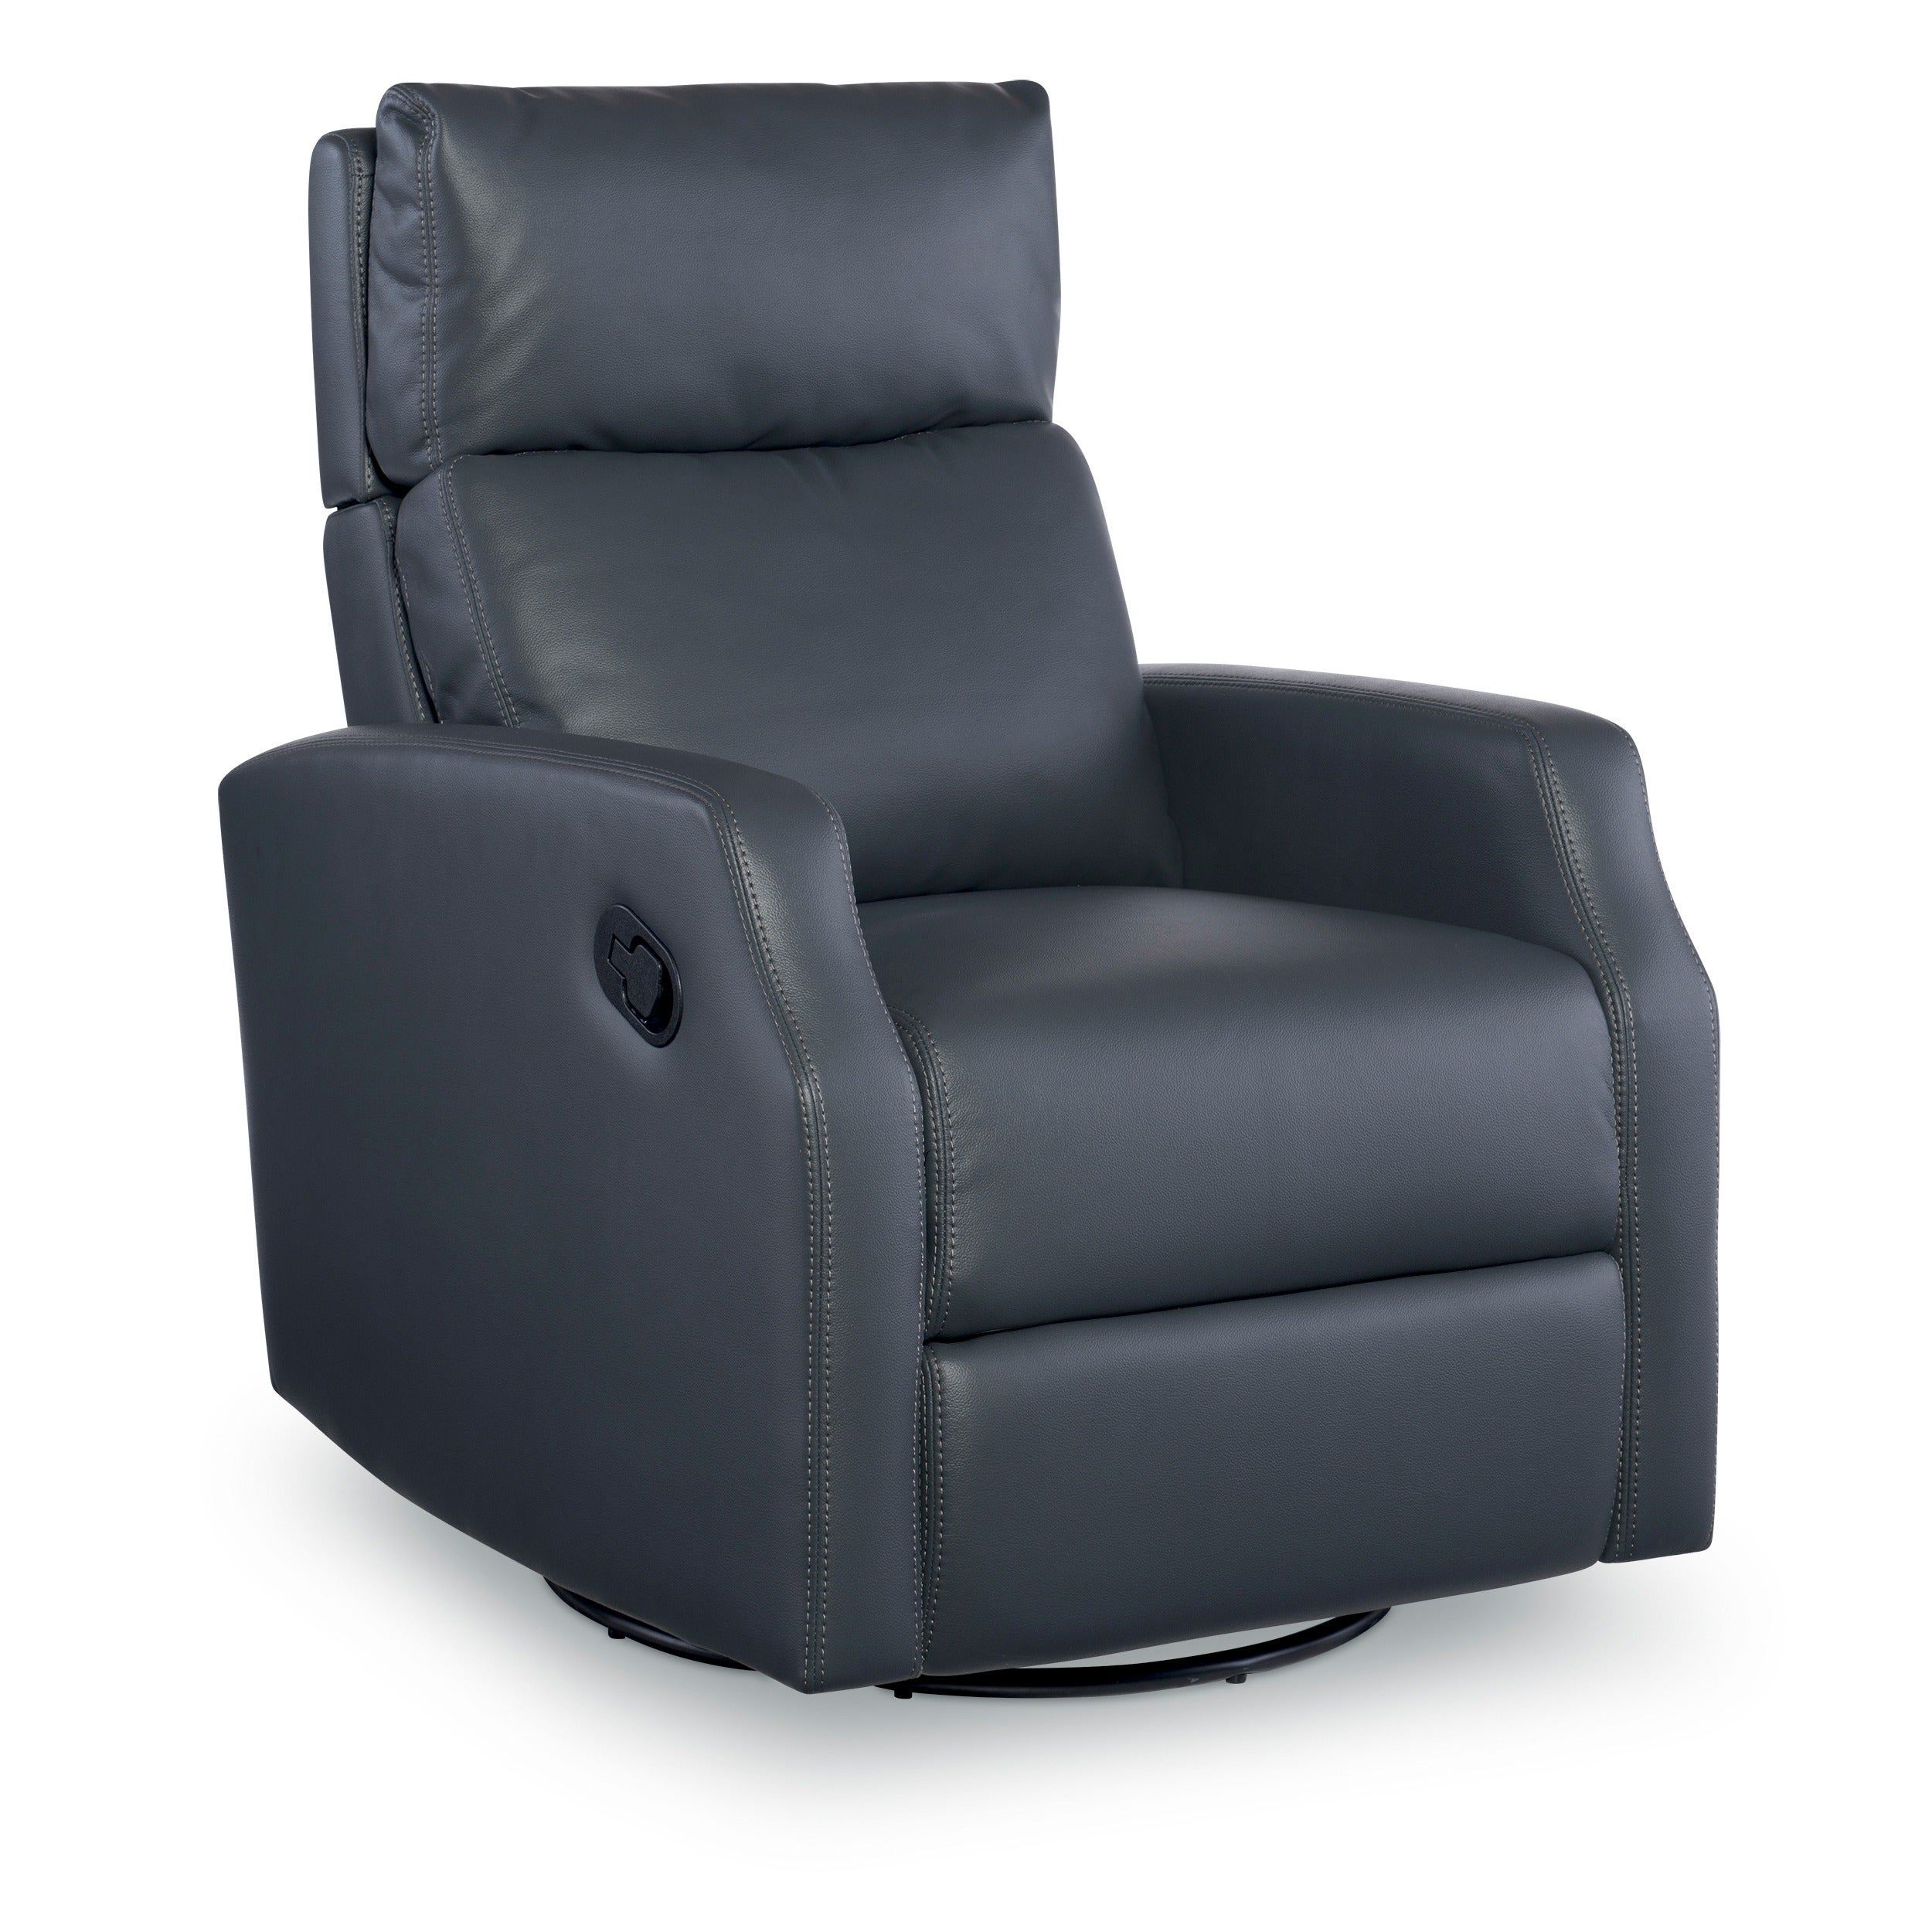 canada sofa things rocking applied glider nursery mag recliner residence chair your throughout to idea for tremendous